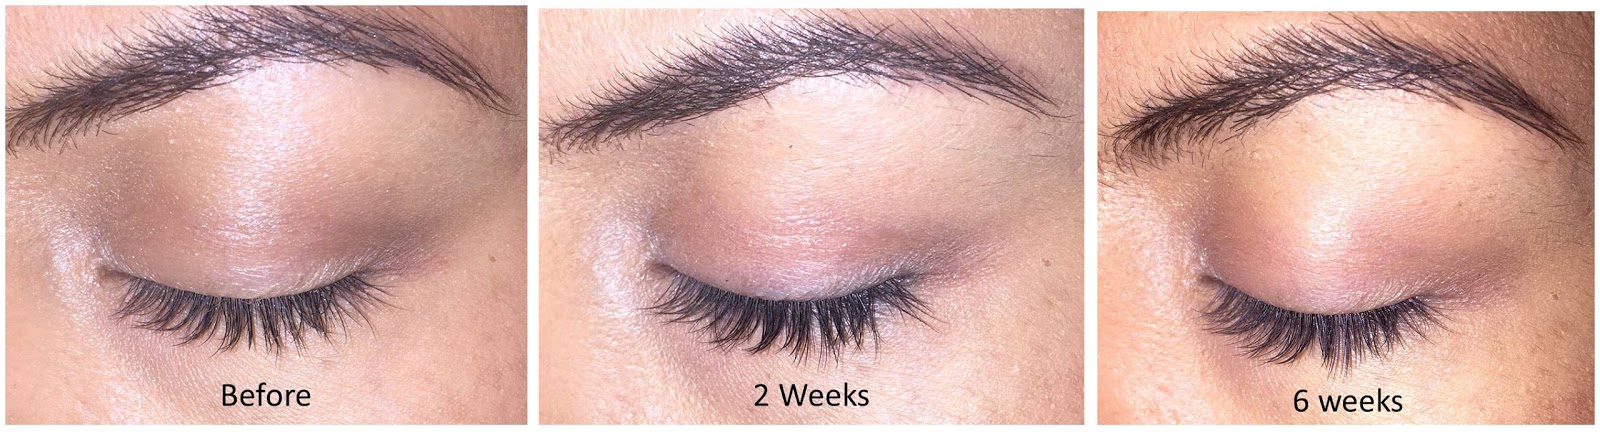 d653351c831 Thicker, Fuller Lashes with Zoria Boost Lash Intensifying Serum ...